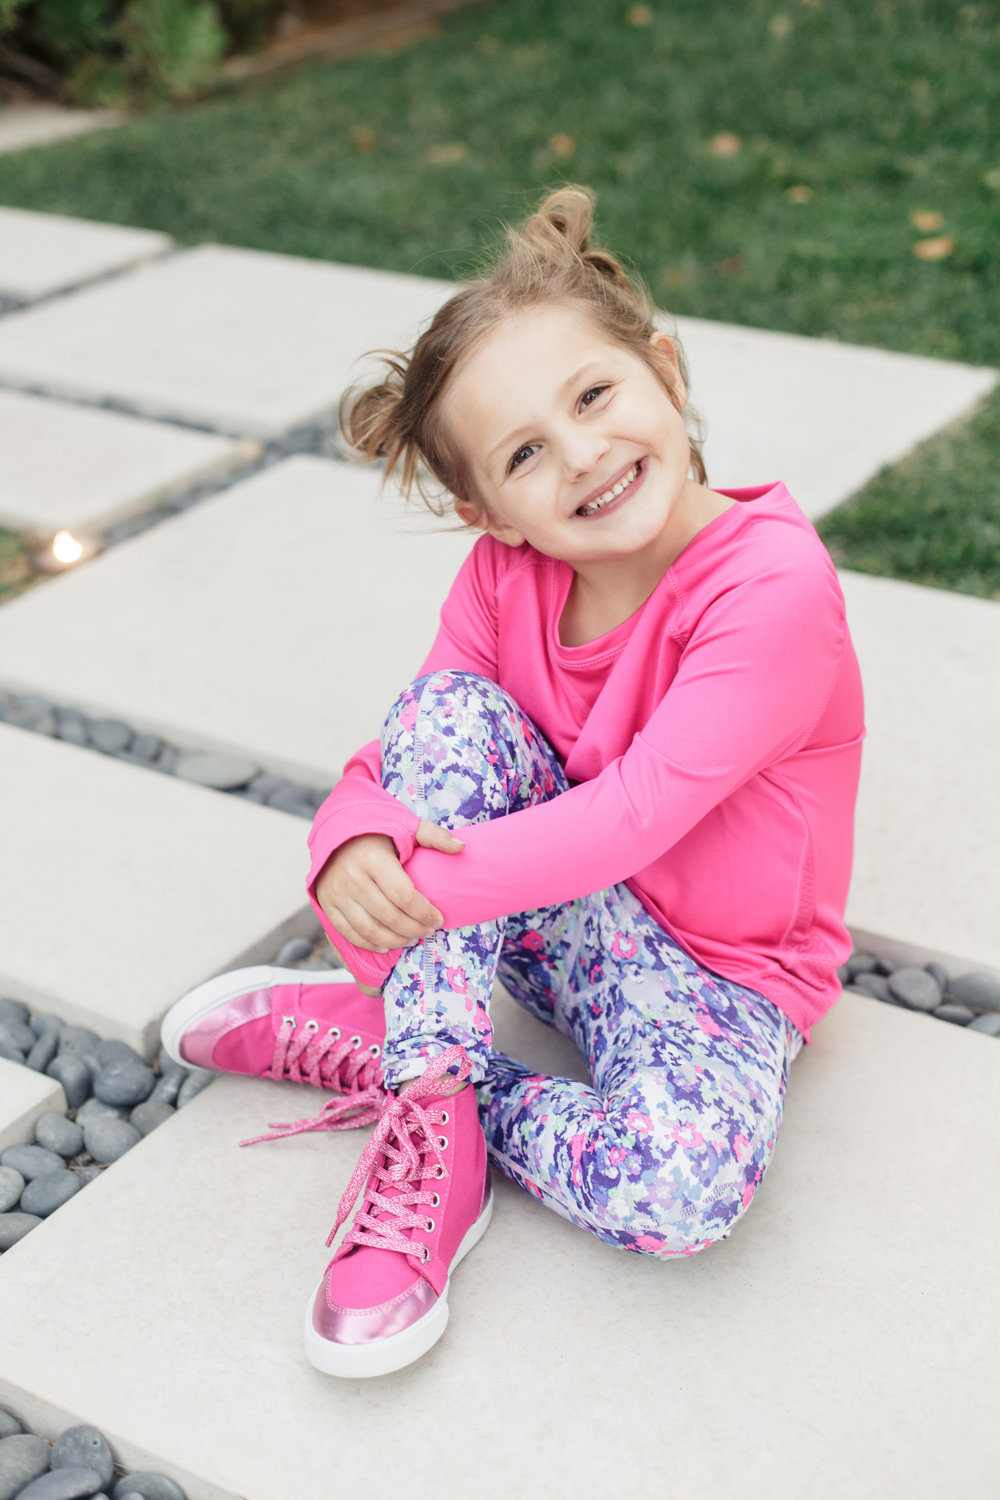 Light Layers for your littles - The coziest layers that will take them right through fall